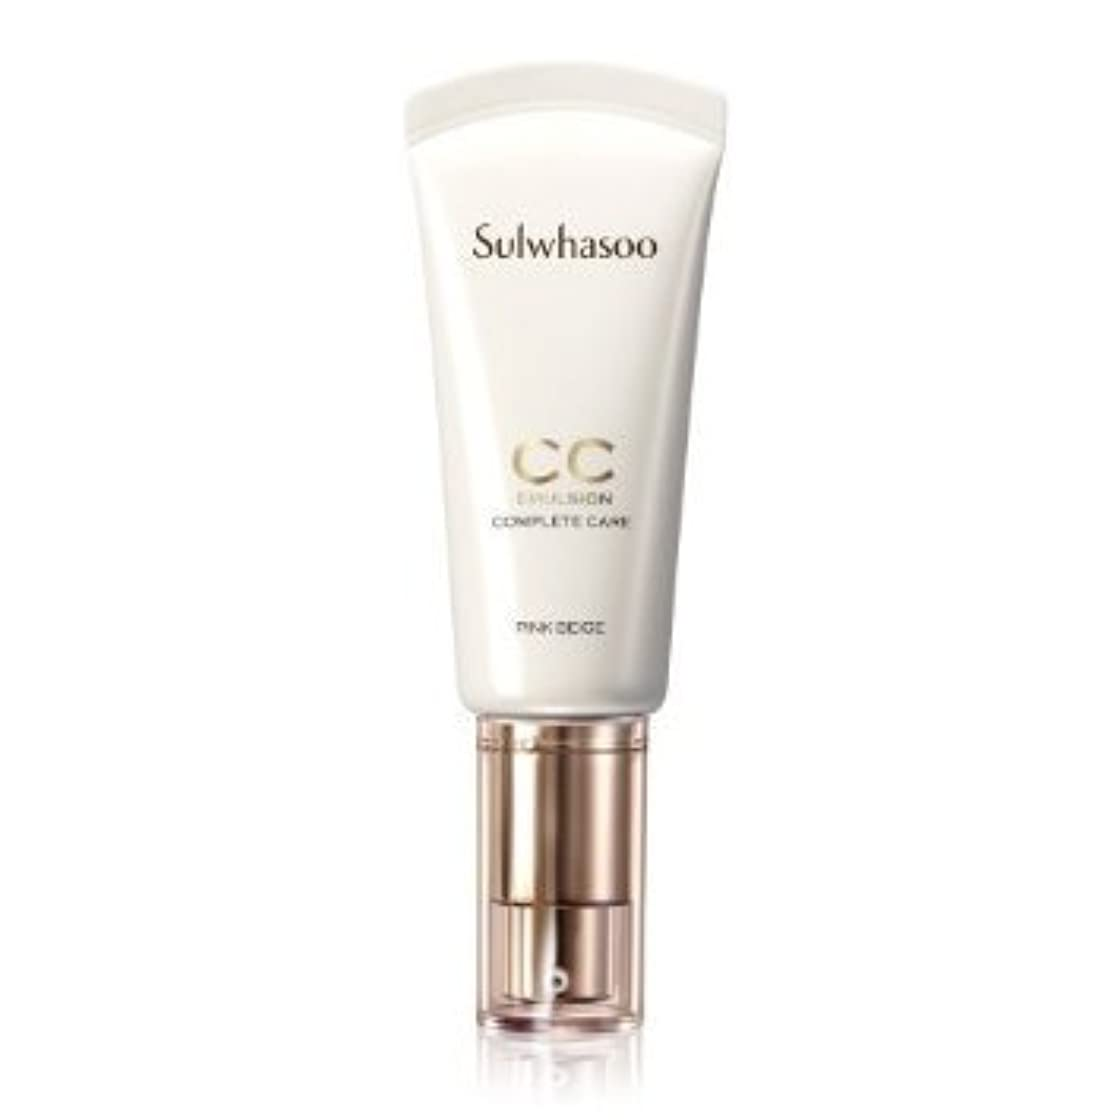 Sulwhasoo CC Emulsion BB Cream Blemish Balm #02 Medium Beige[並行輸入品]